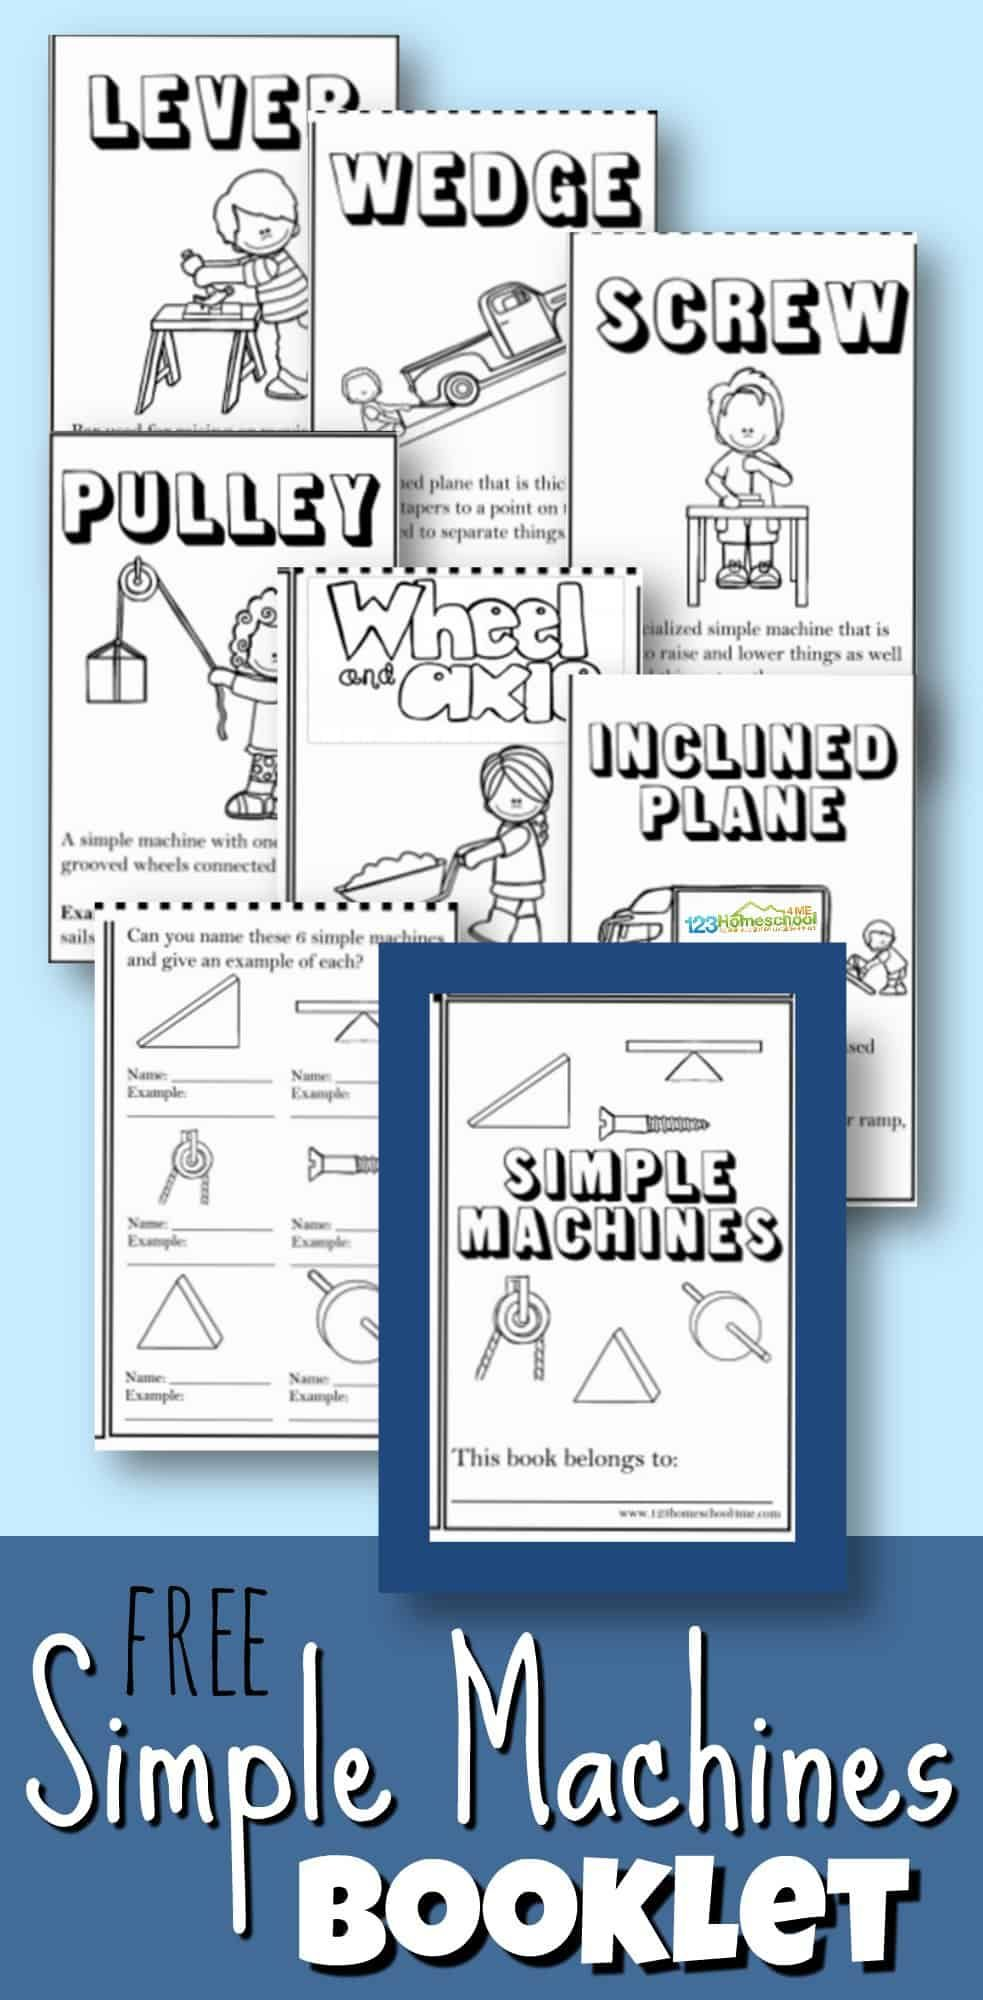 FREE Simple Machines Booklet   FREE Worksheets for Kids